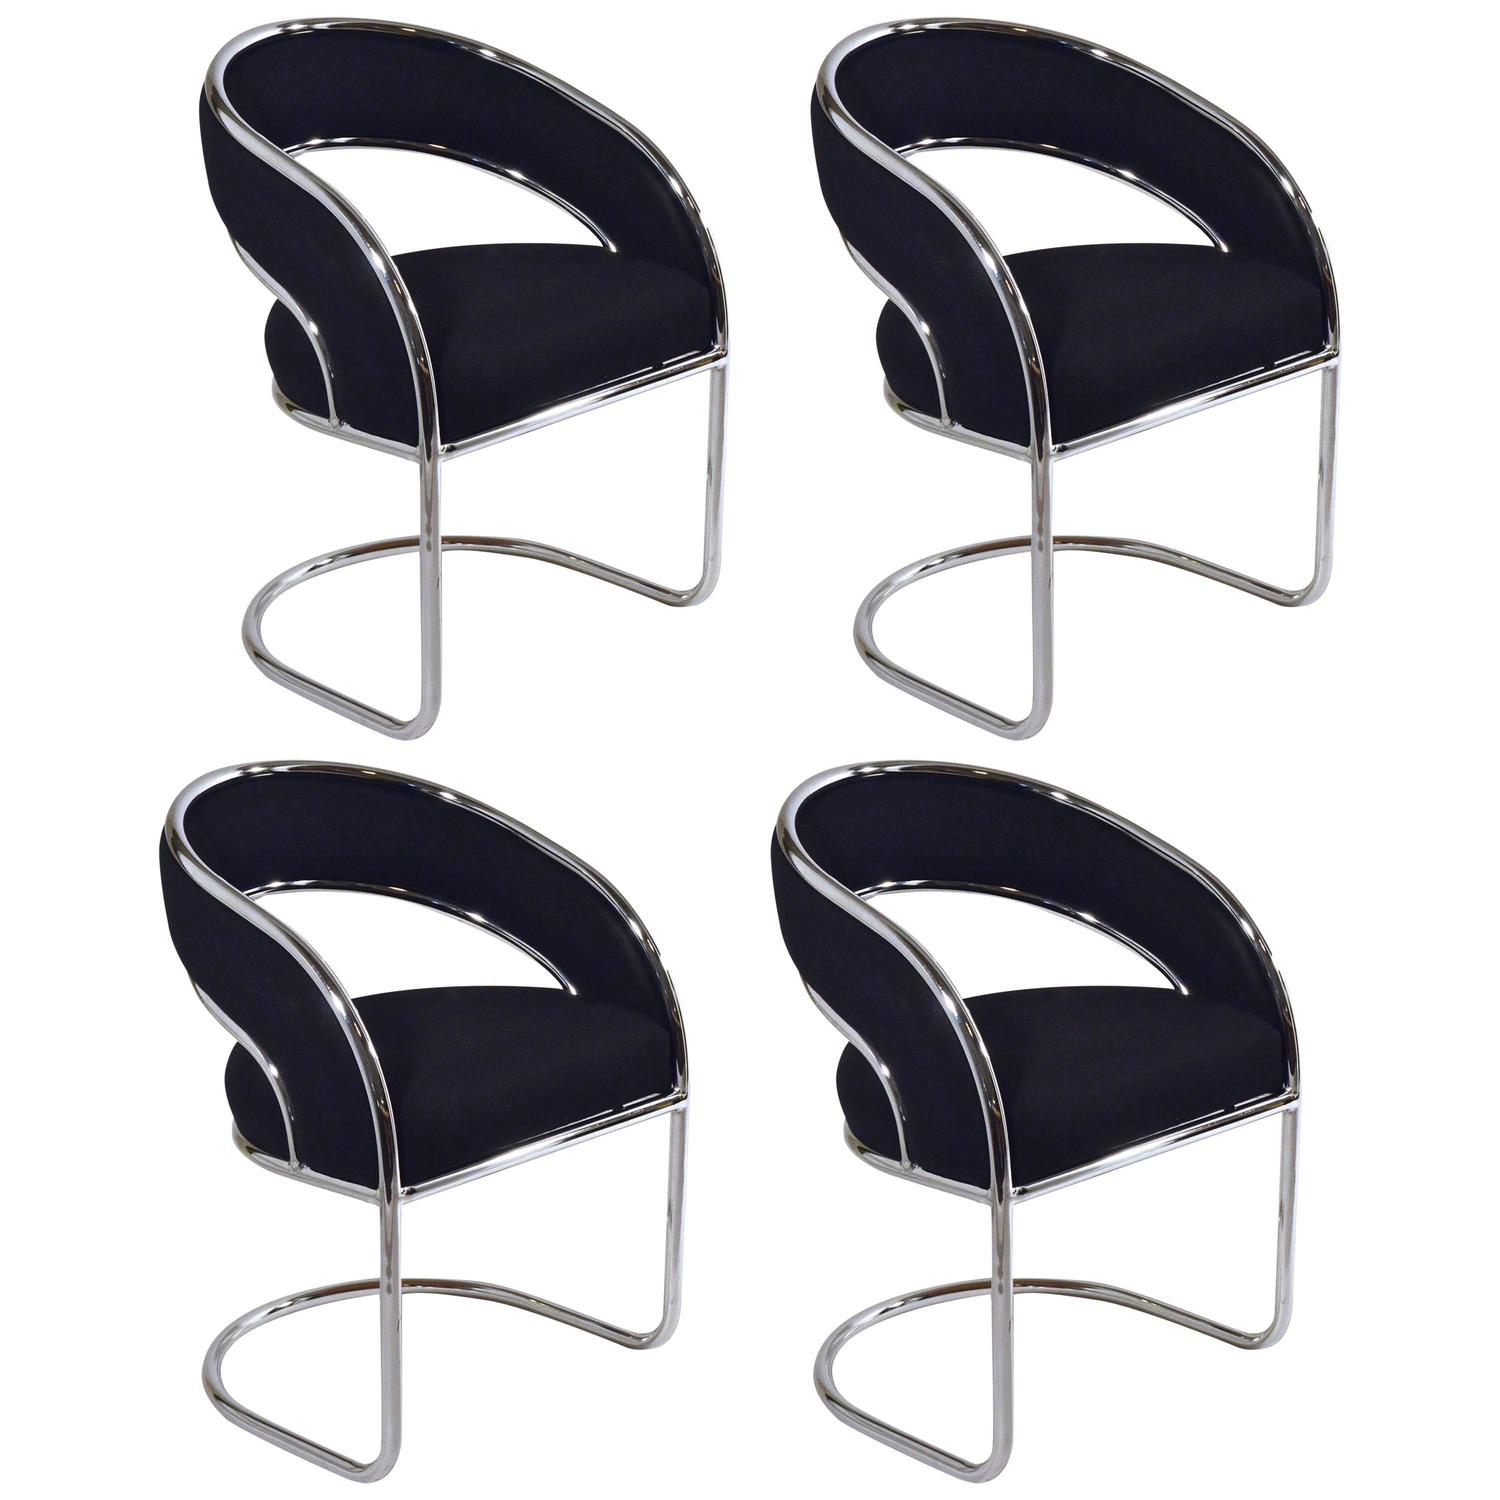 S 4 Mid Century Modern Upholstered Chrome Sling Back Chairs For Sale at  1stdibs. S 4 Mid Century Modern Upholstered Chrome Sling Back Chairs For